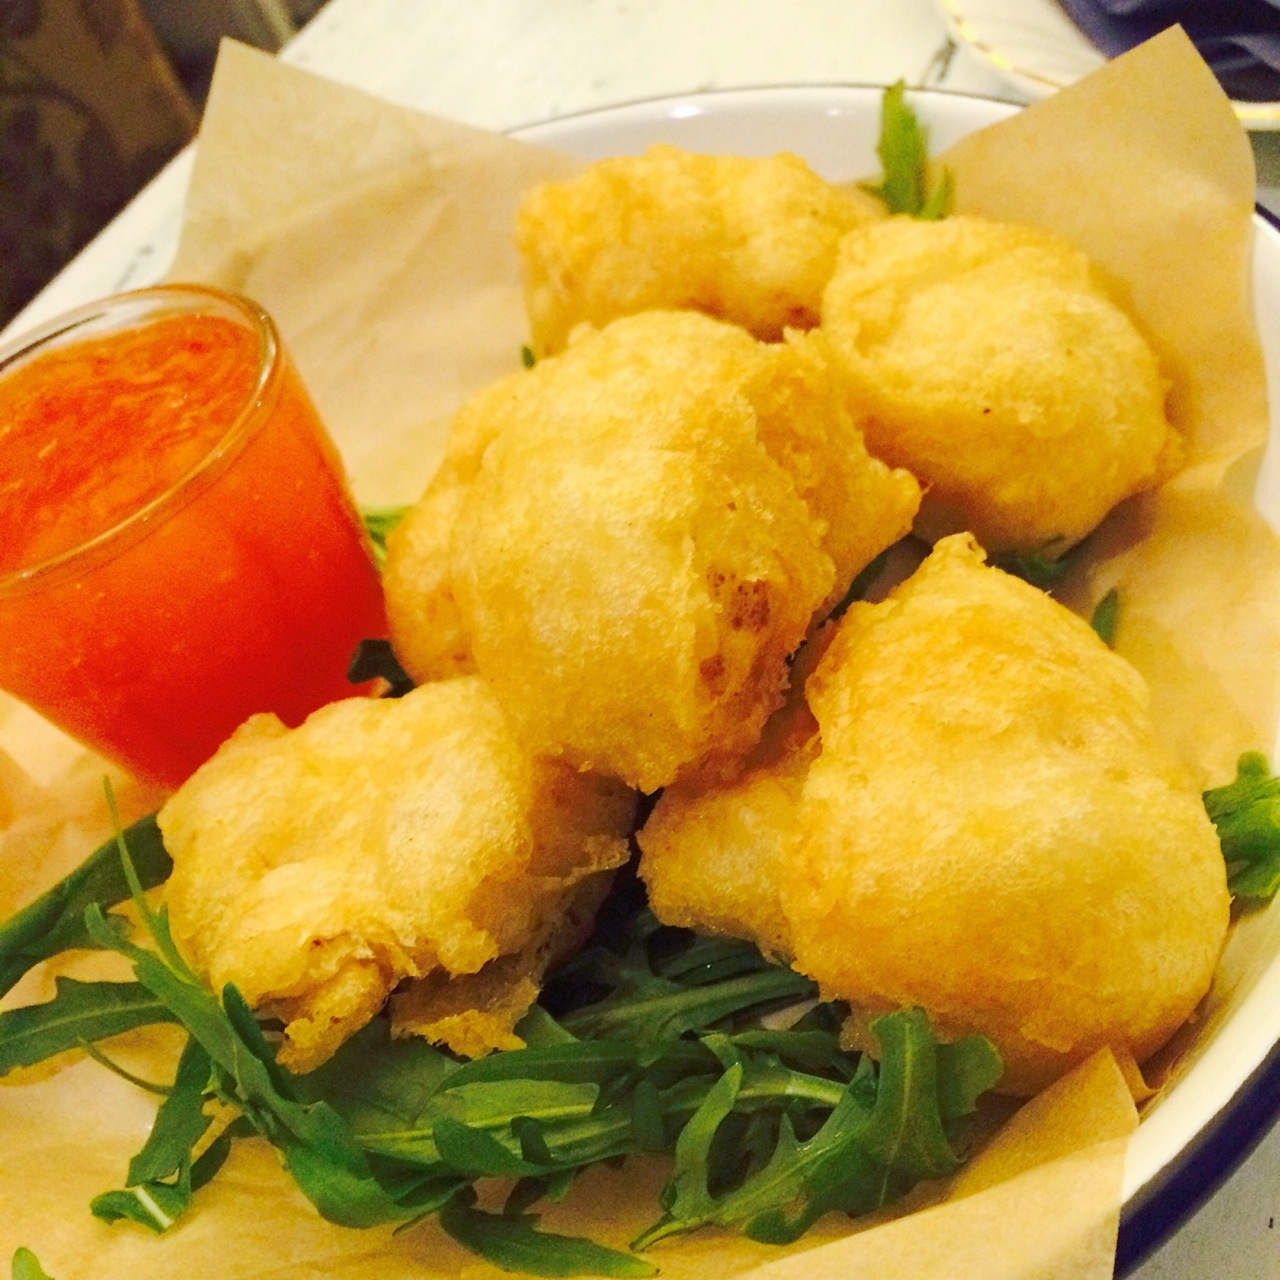 https://i2.wp.com/fatgayvegan.com/wp-content/uploads/2015/11/beer-battered-cauliflower.jpg?fit=1280%2C1280